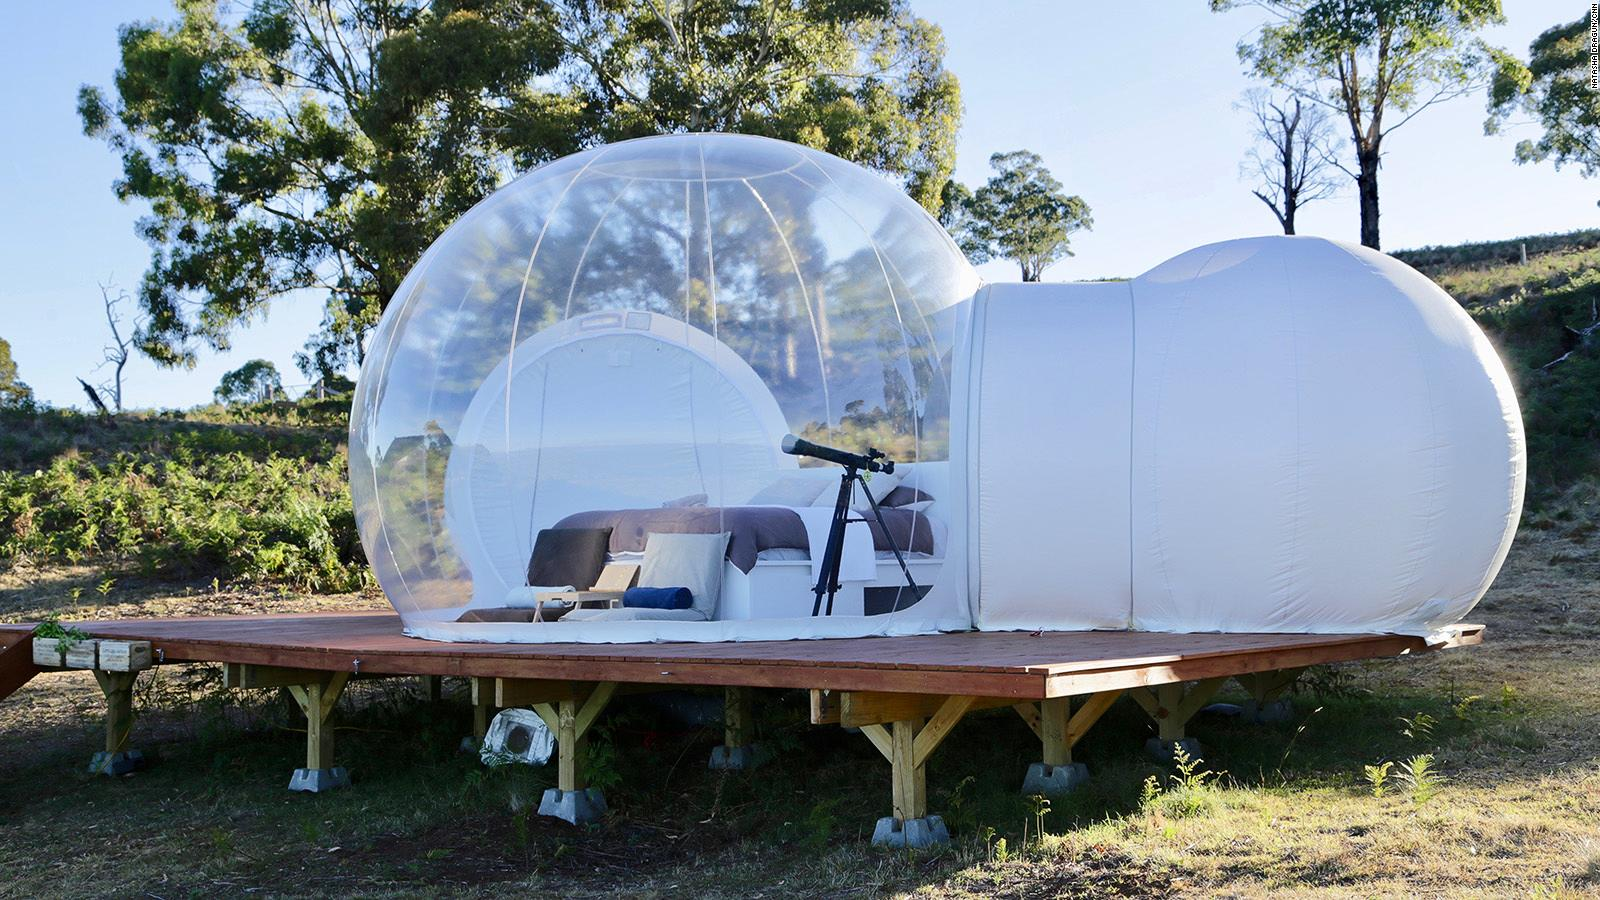 Bubbletent Australia, the ultimate skygazing experience | CNN Travel